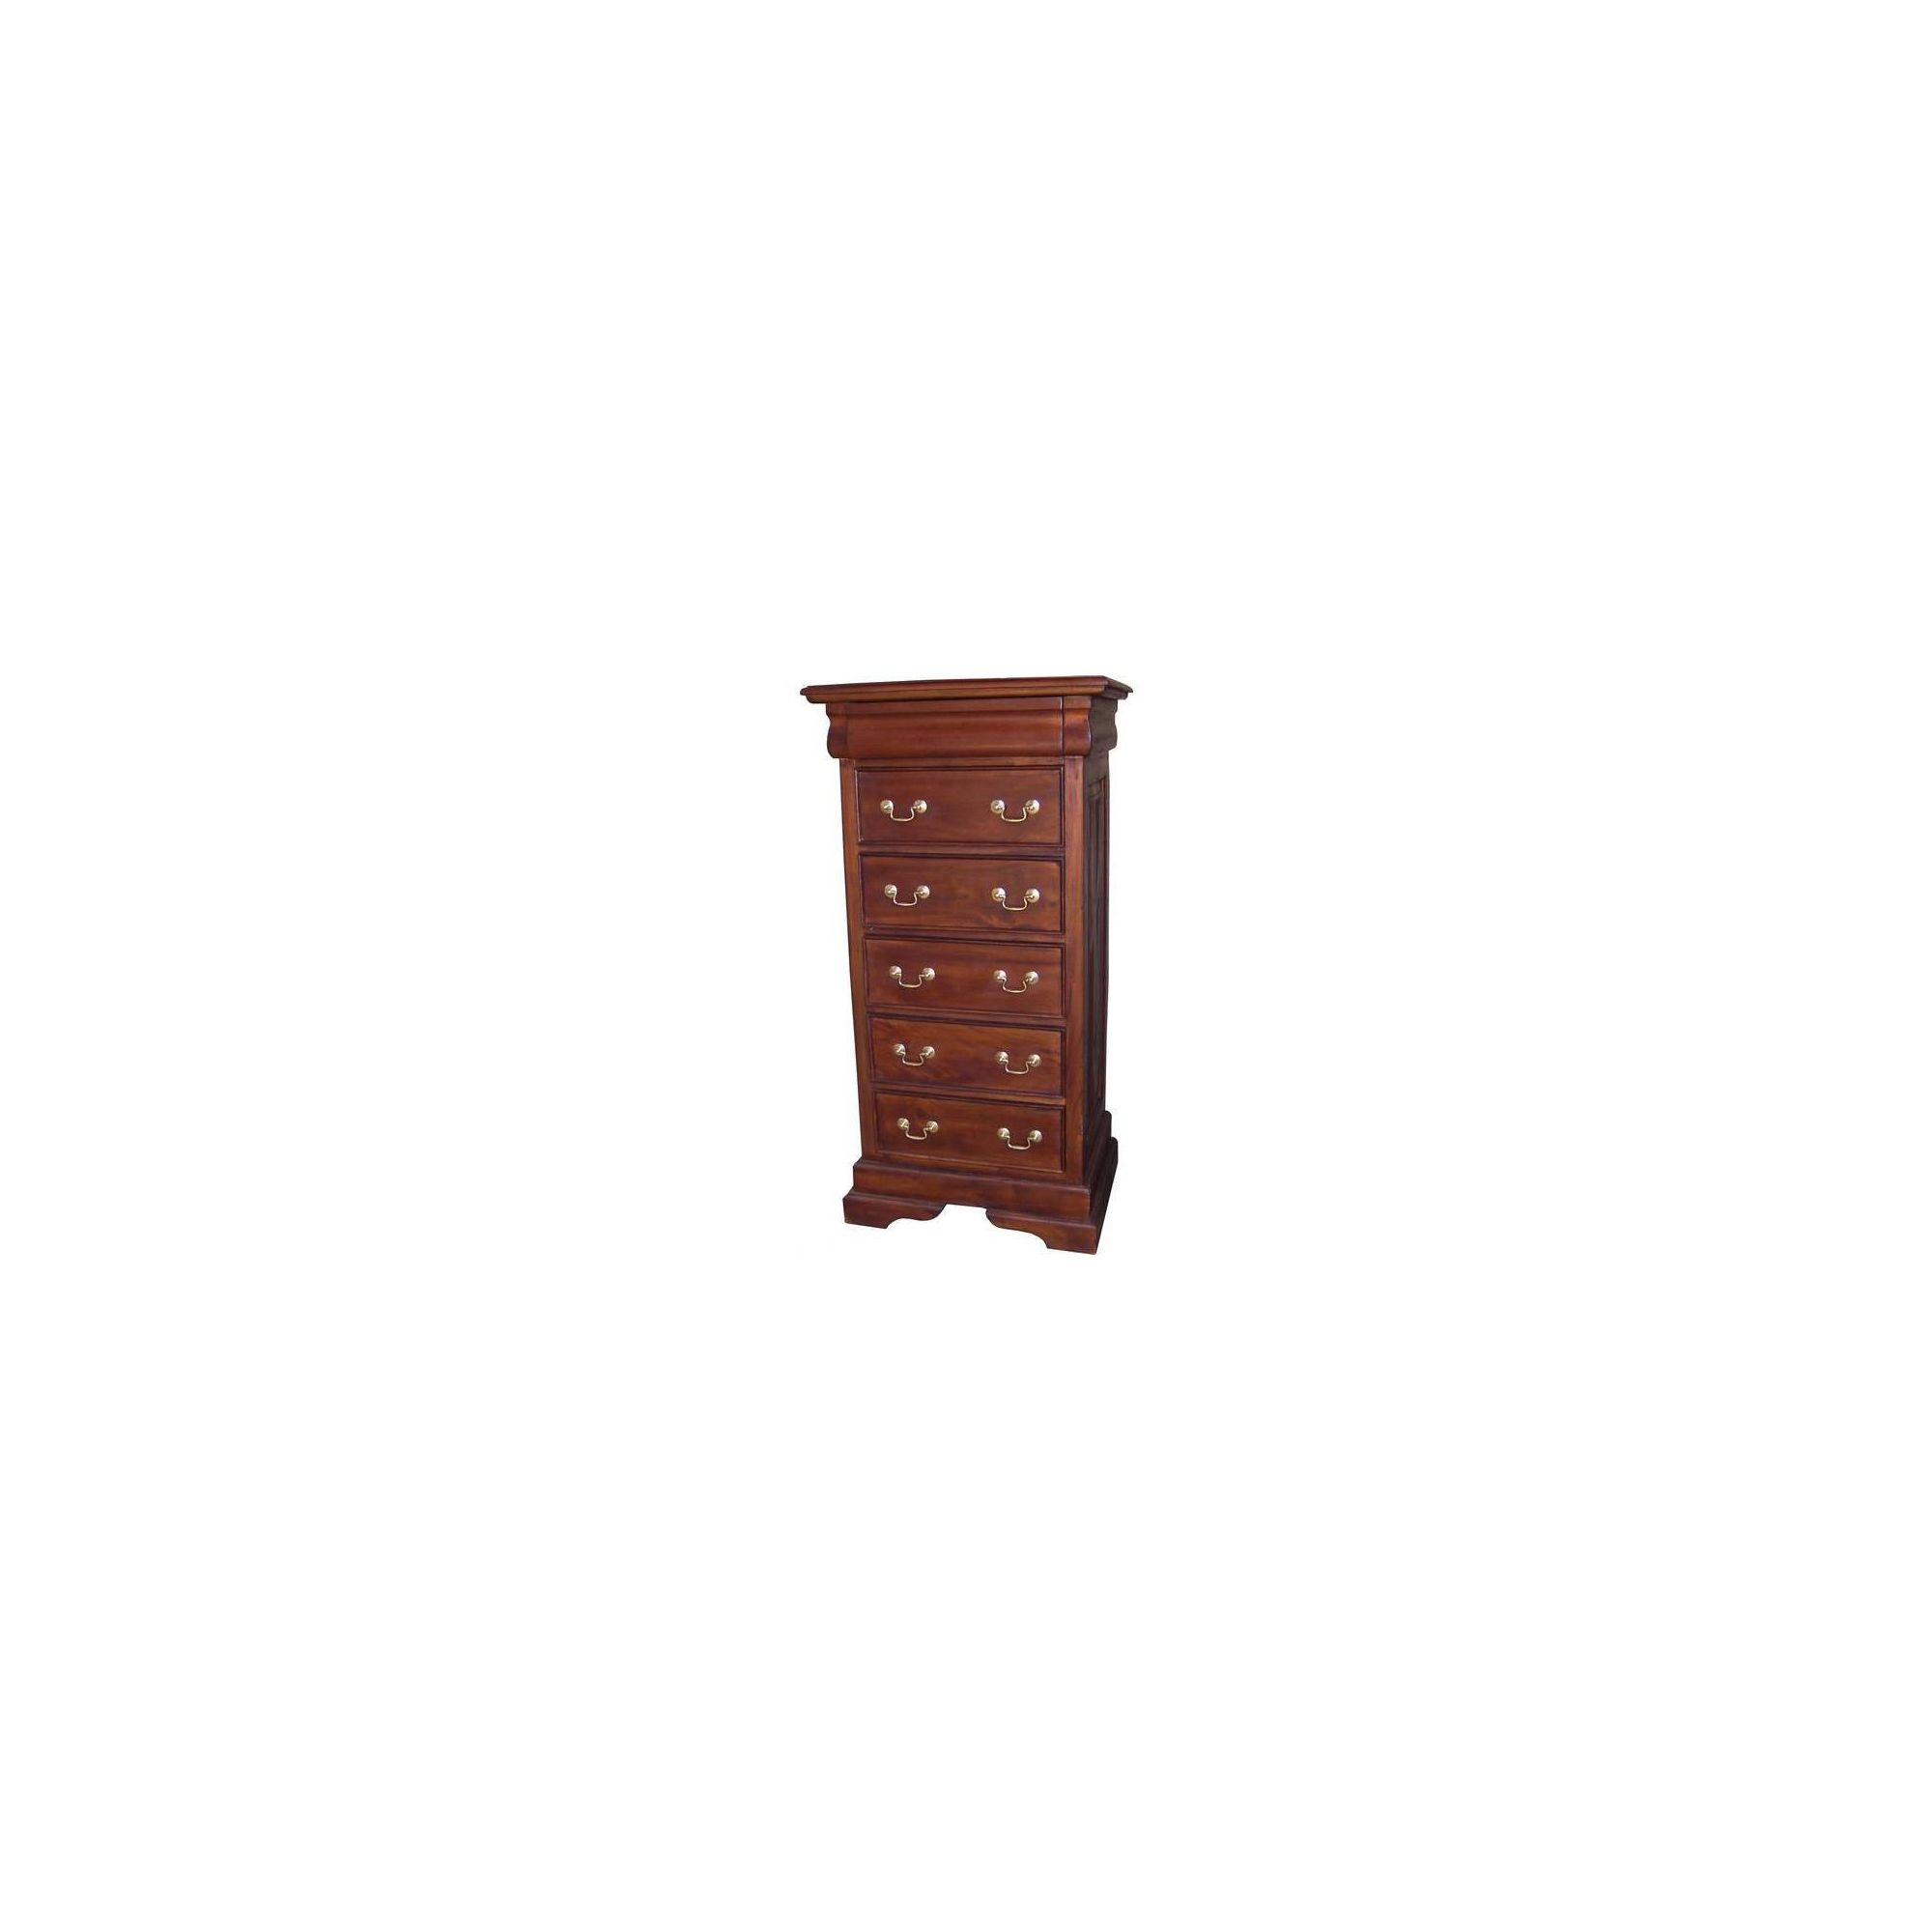 Lock stock and barrel Mahogany 6 Drawer Sleigh Chest in Mahogany - Antique White at Tesco Direct